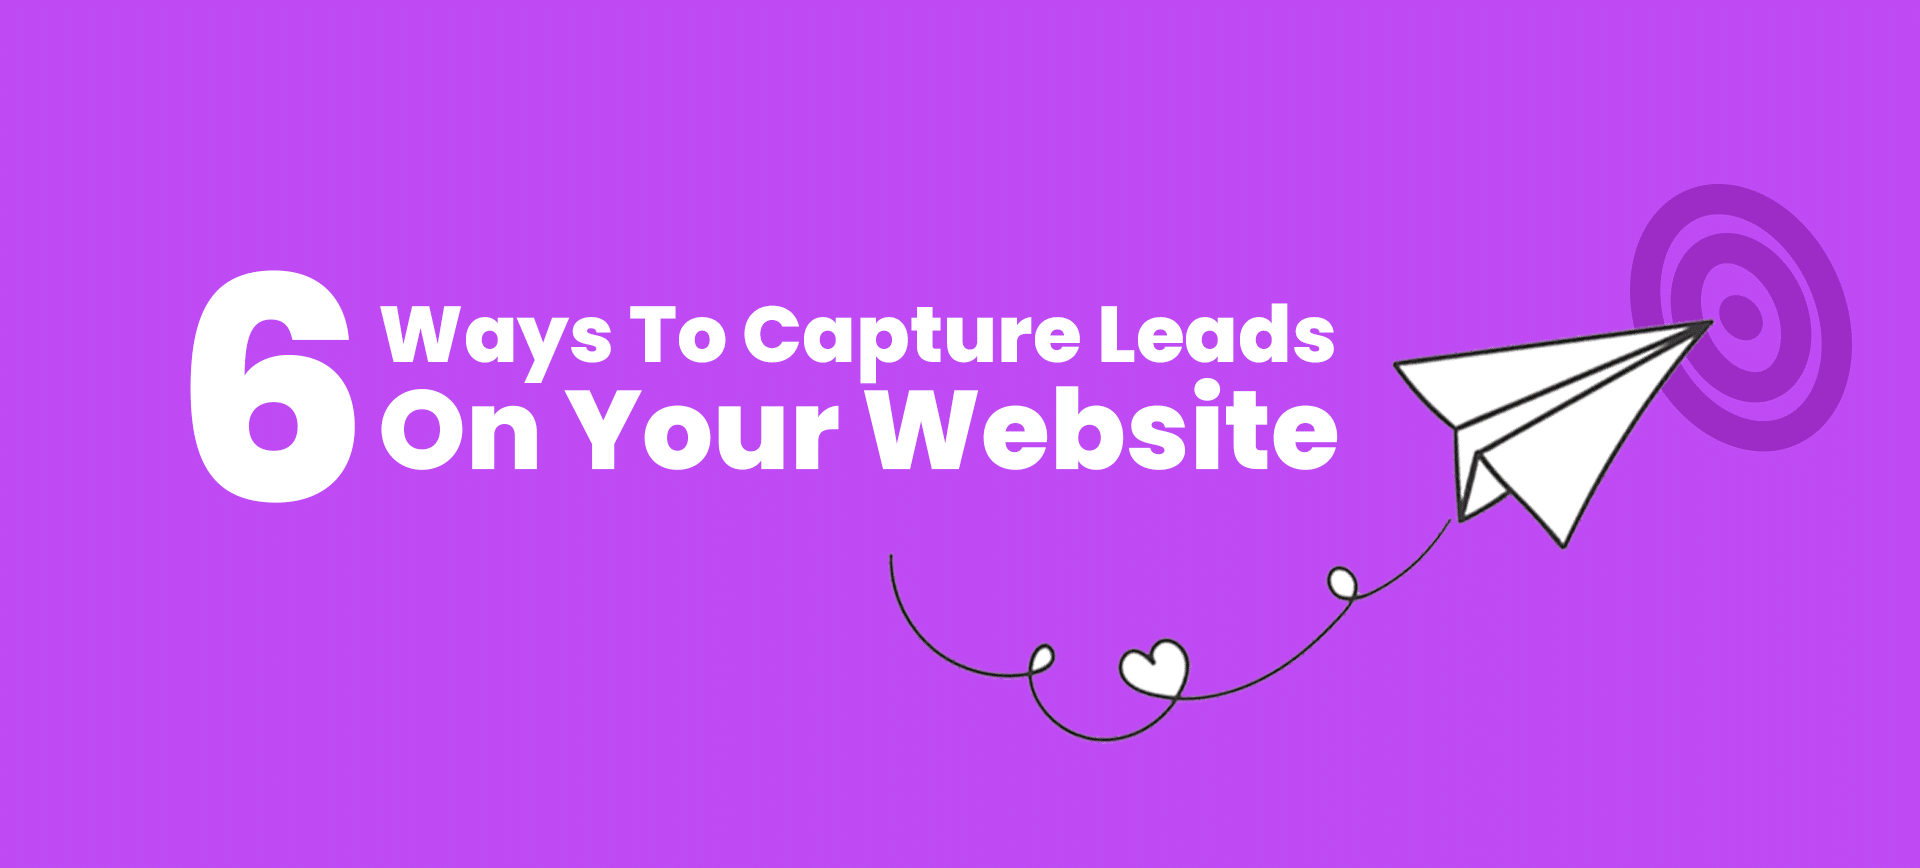 6 Ways To Capture Leads On Your Website